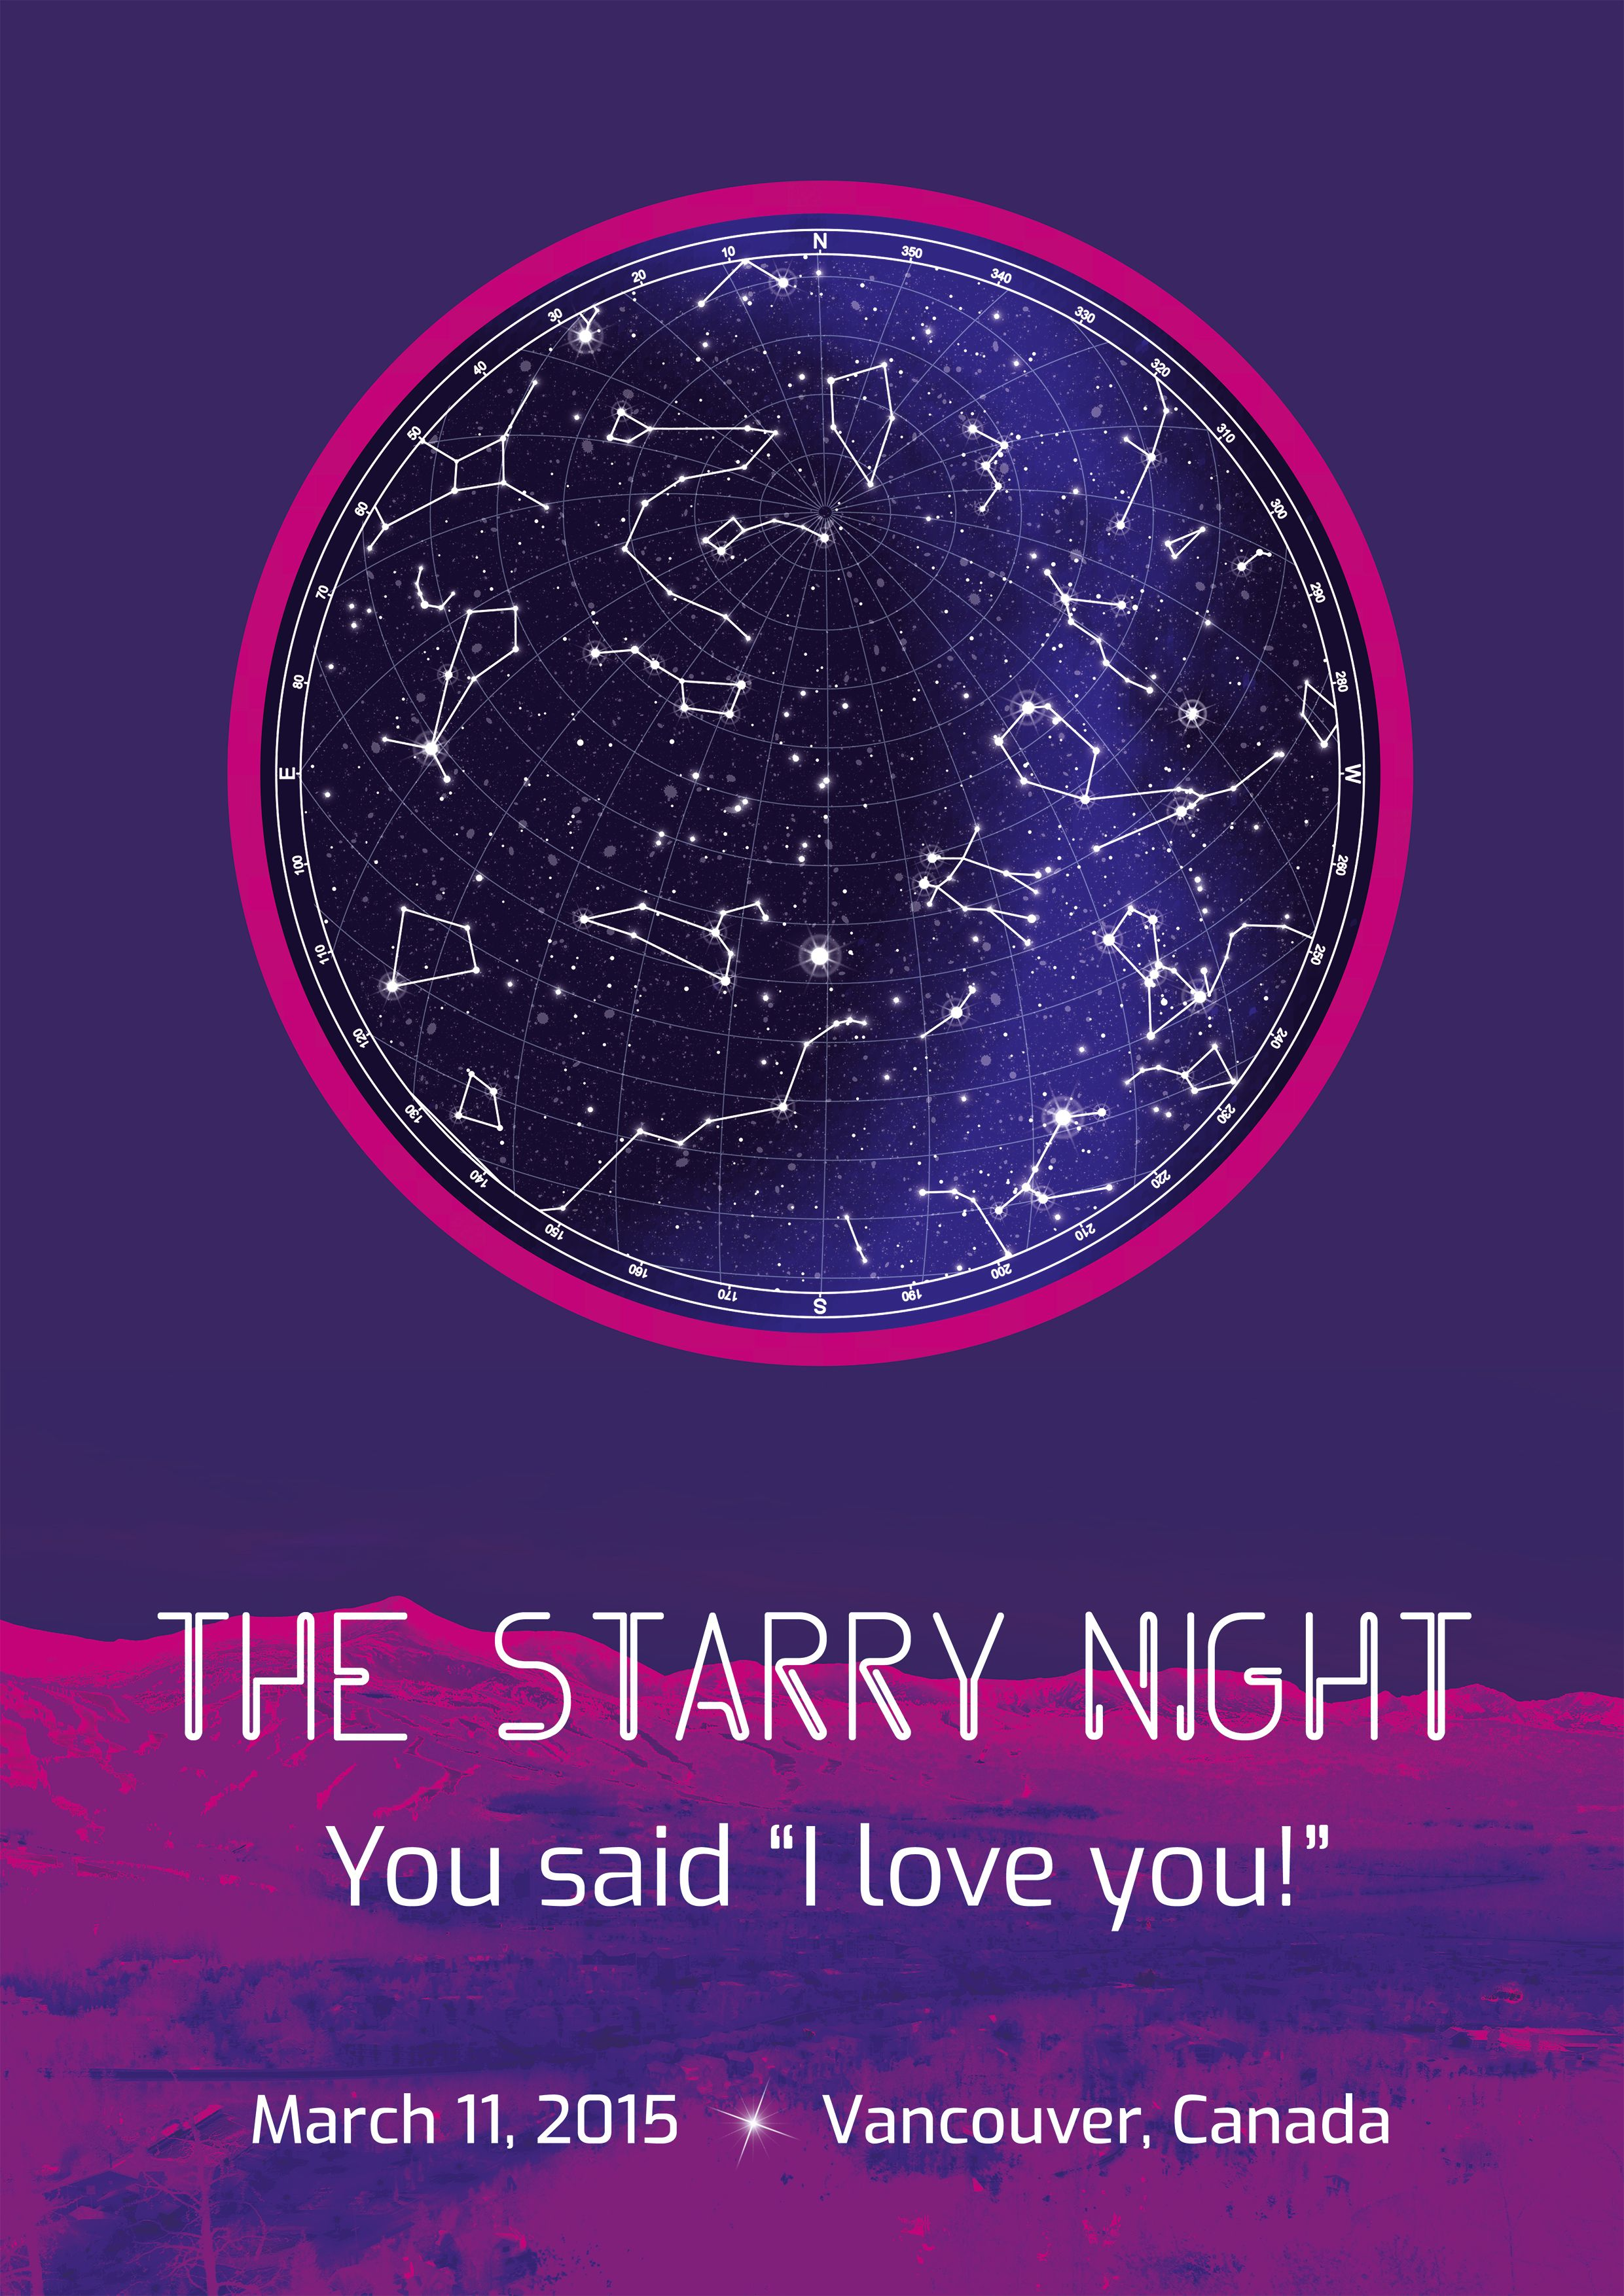 What Is A Star Map.The Night We First Met Digital Star Map Customized Sky Chart Poster